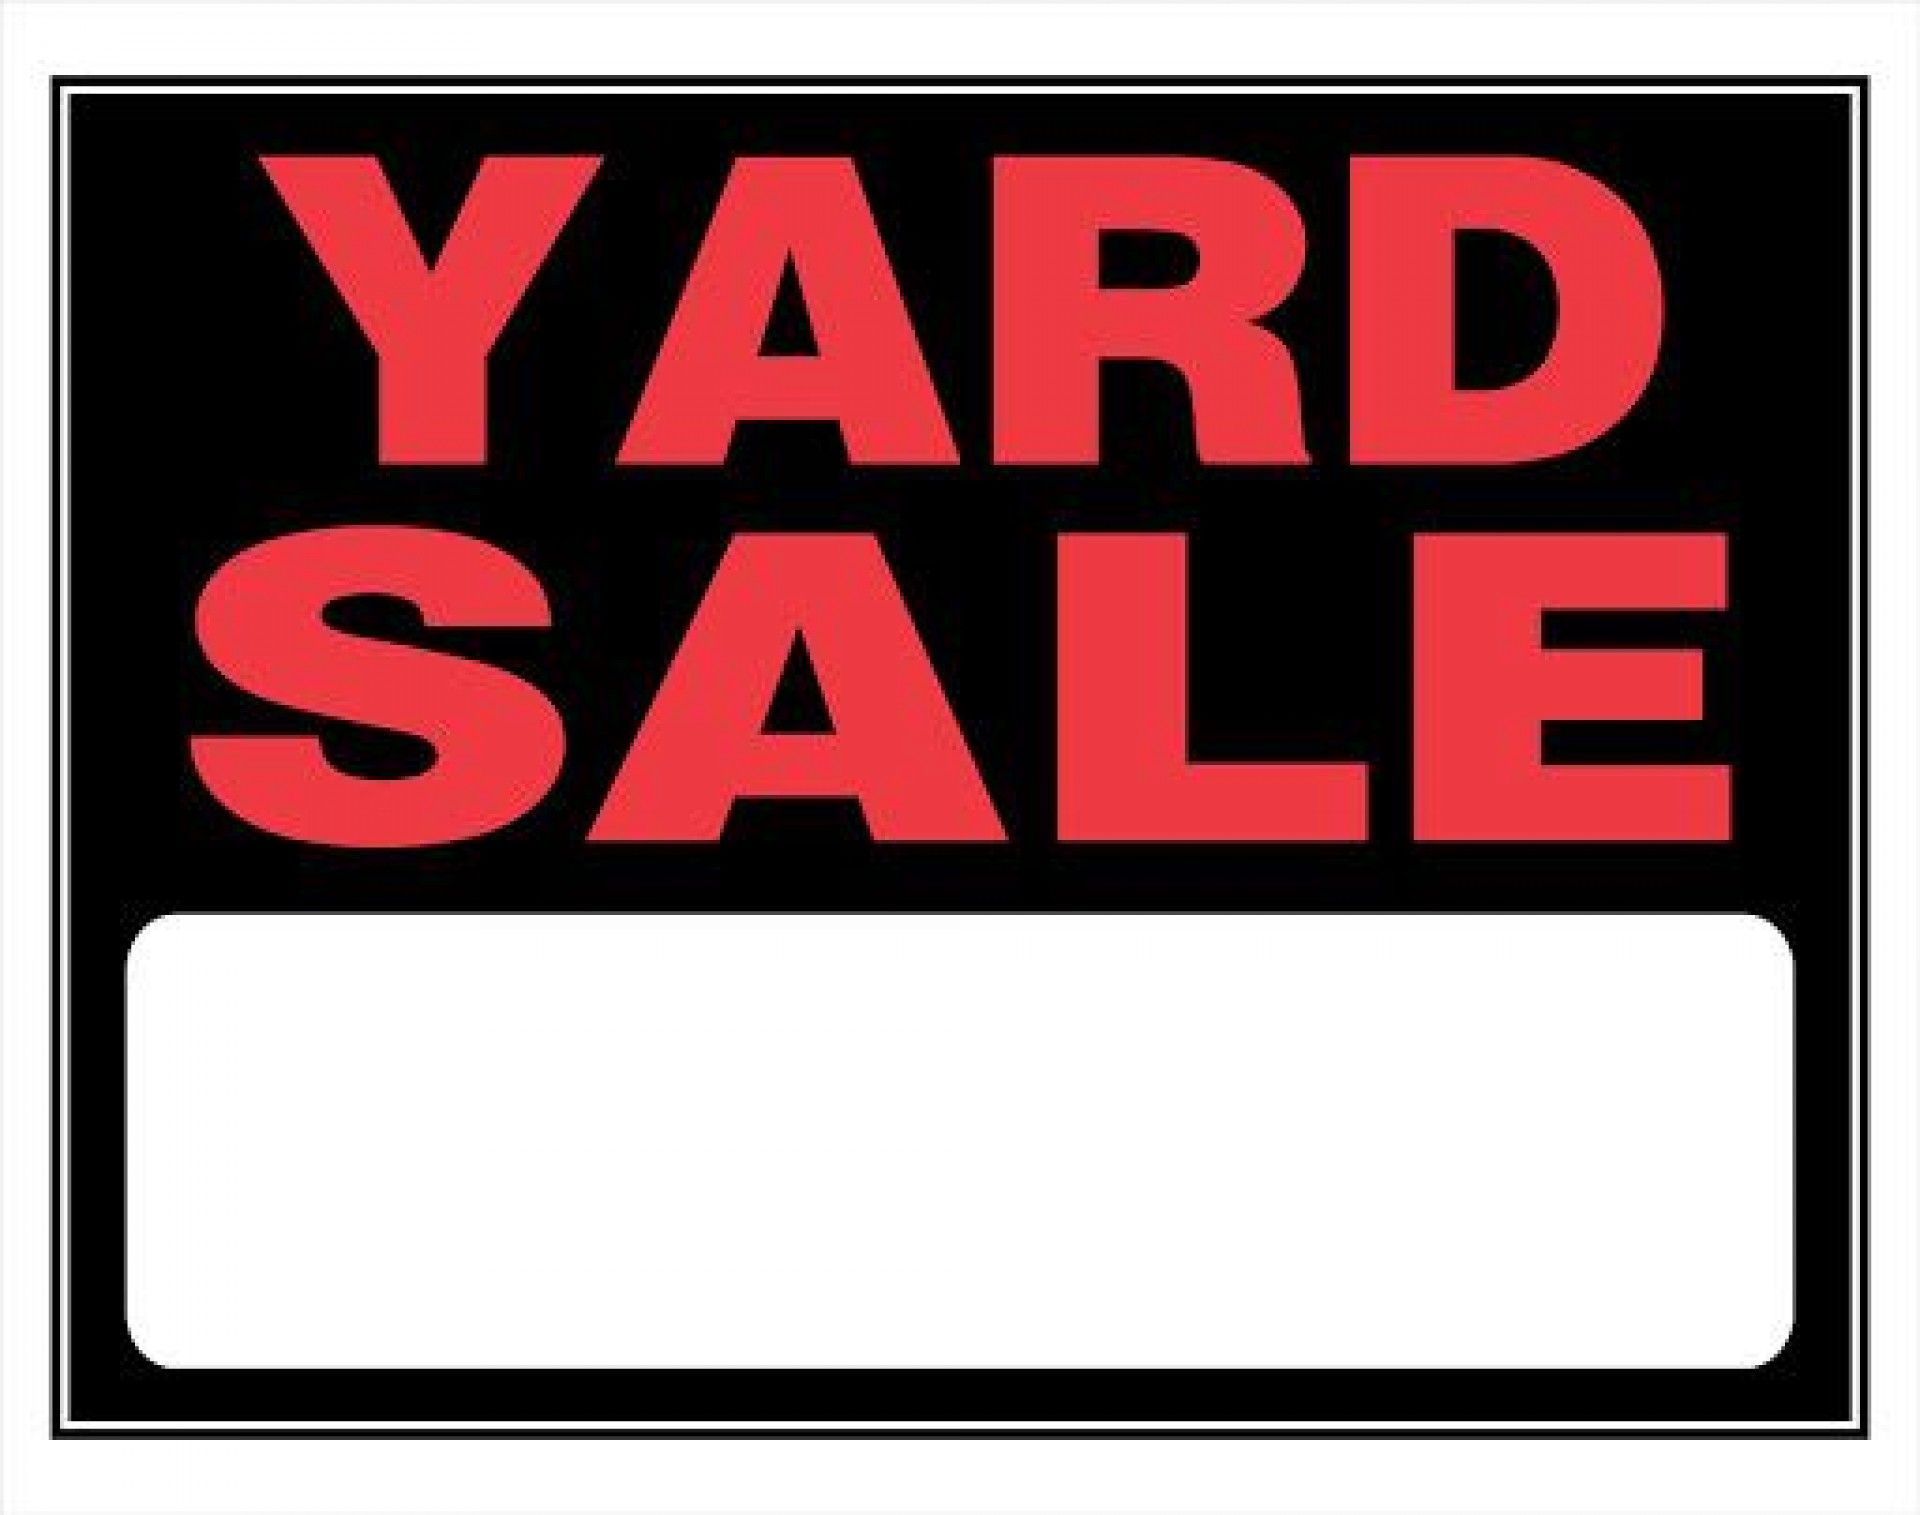 007 Simple Garage Sale Sign Template Picture  Flyer Microsoft Word Community Yard Free Rummage1920